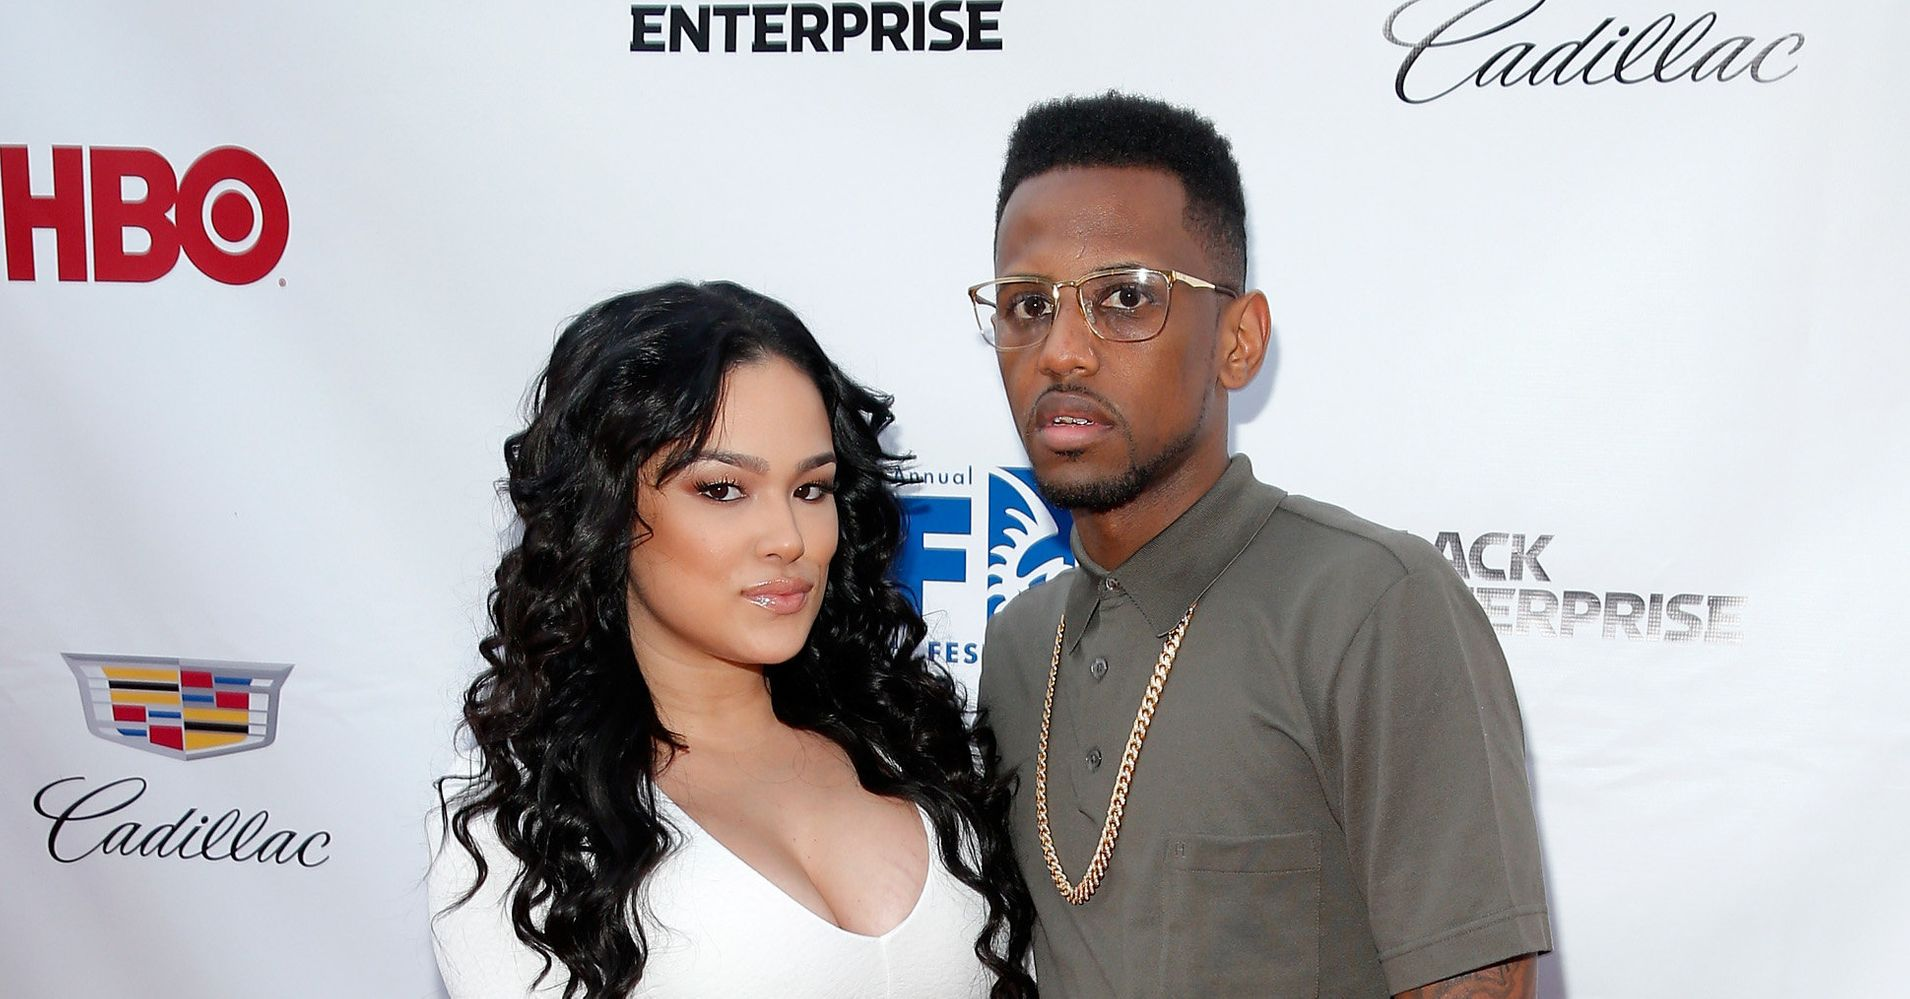 ae115a0cf243 Rapper Fabolous Accused Of Assaulting Girlfriend Emily B